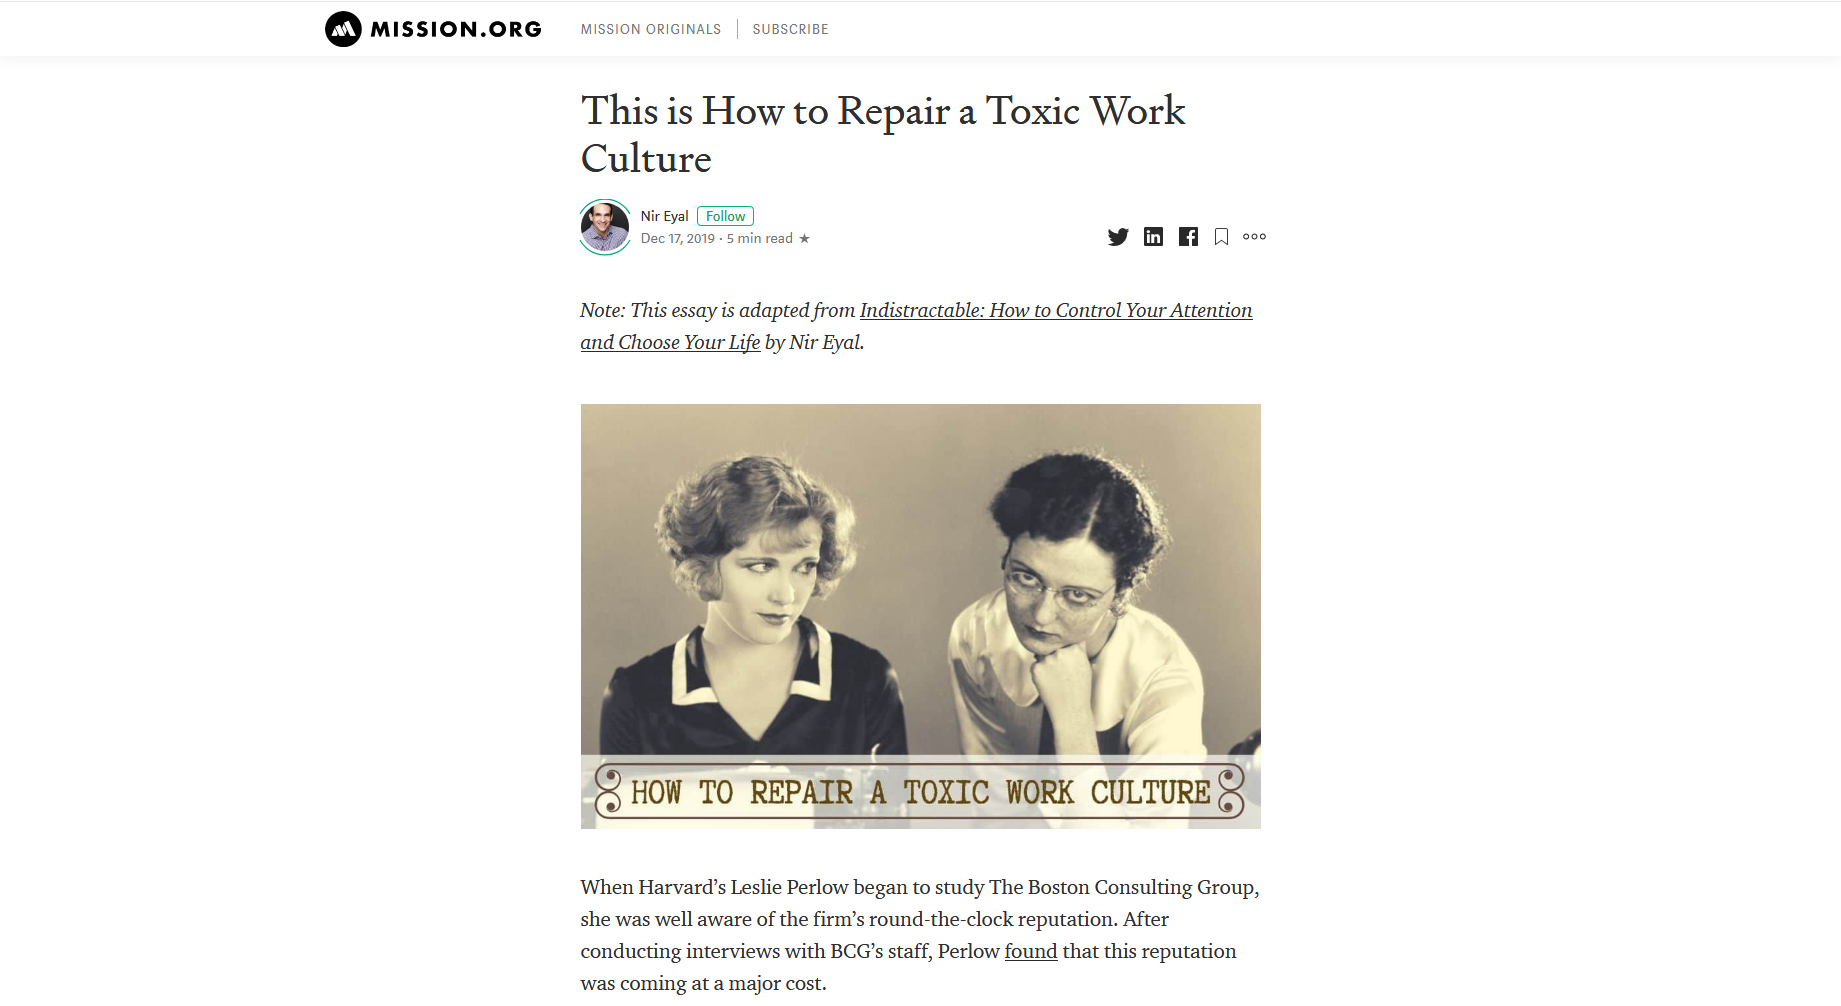 This is How to Repair a Toxic Work Culture